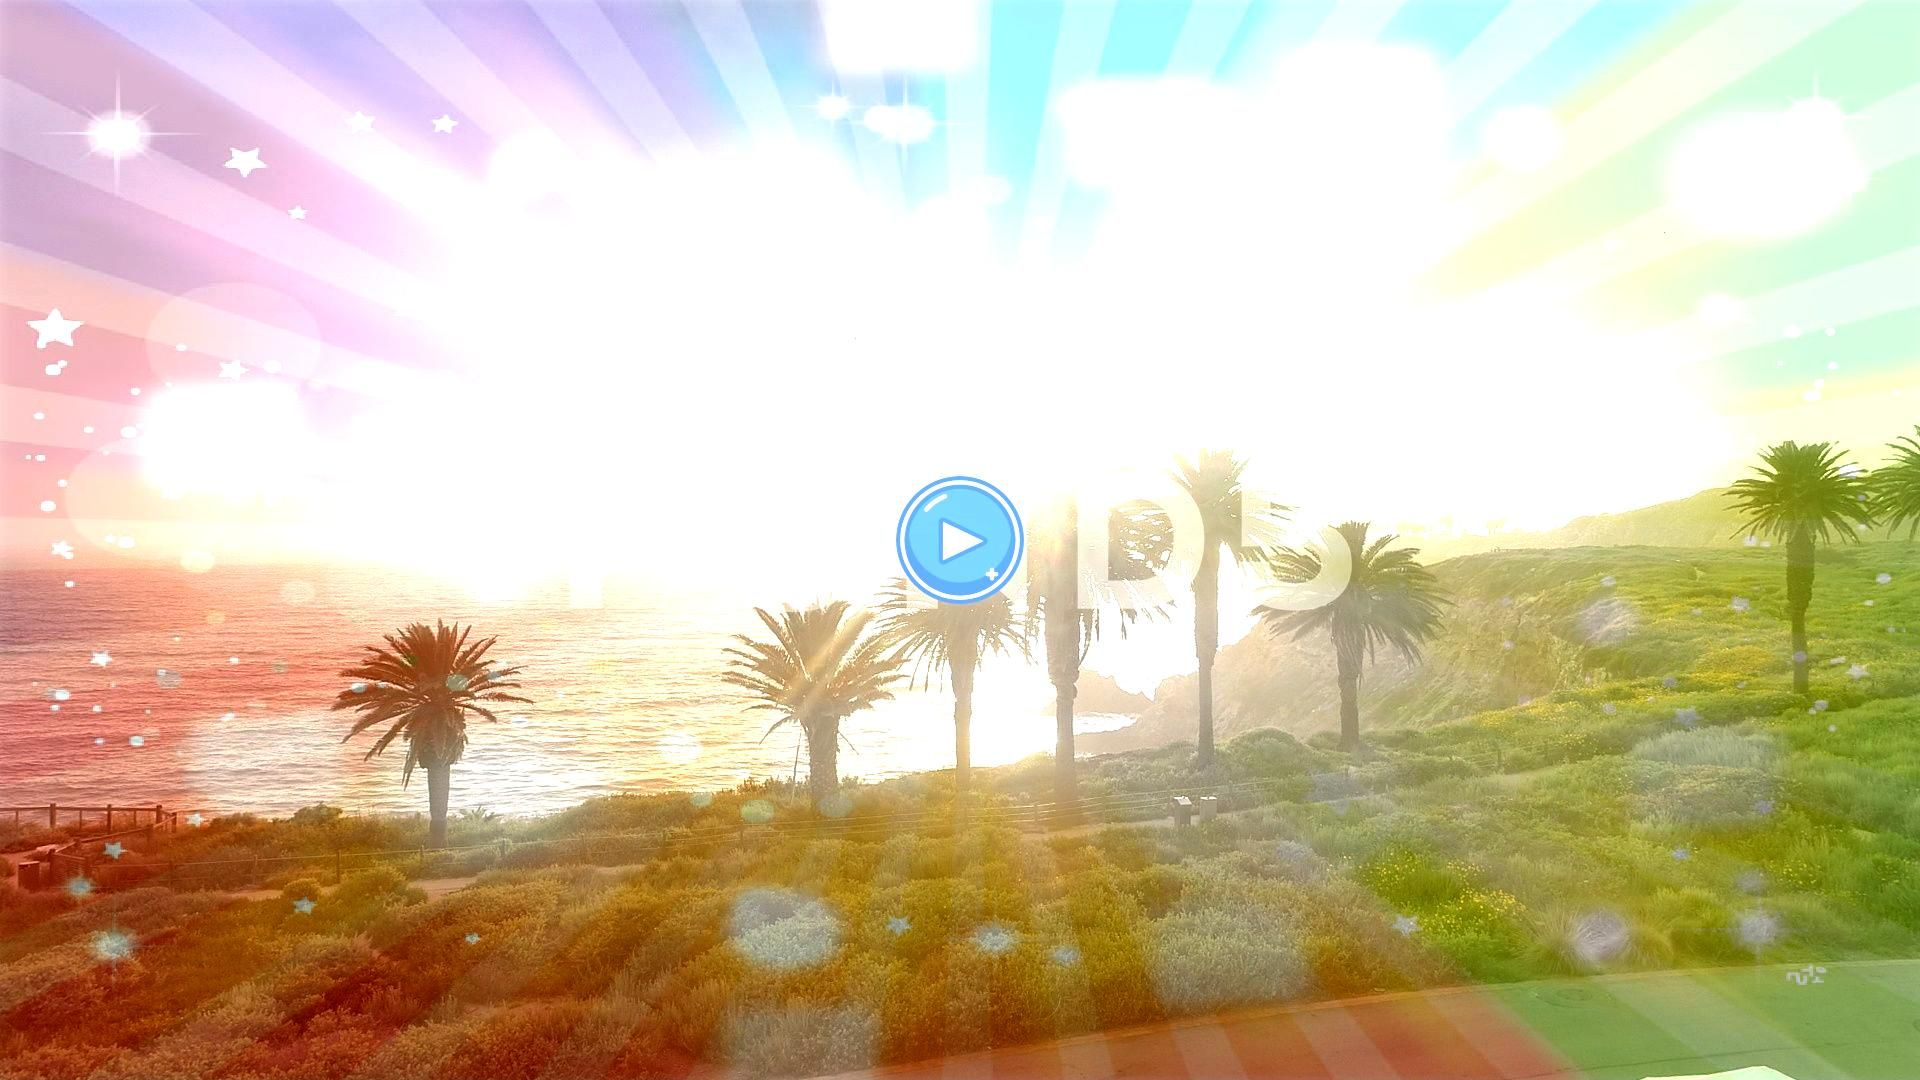 in nature palm tree ocean cliff tracking shot the end serenity Stock Footage treeoceanpalmBeautyBeauty in nature palm tree ocean cliff tracking shot the end serenity Stoc...